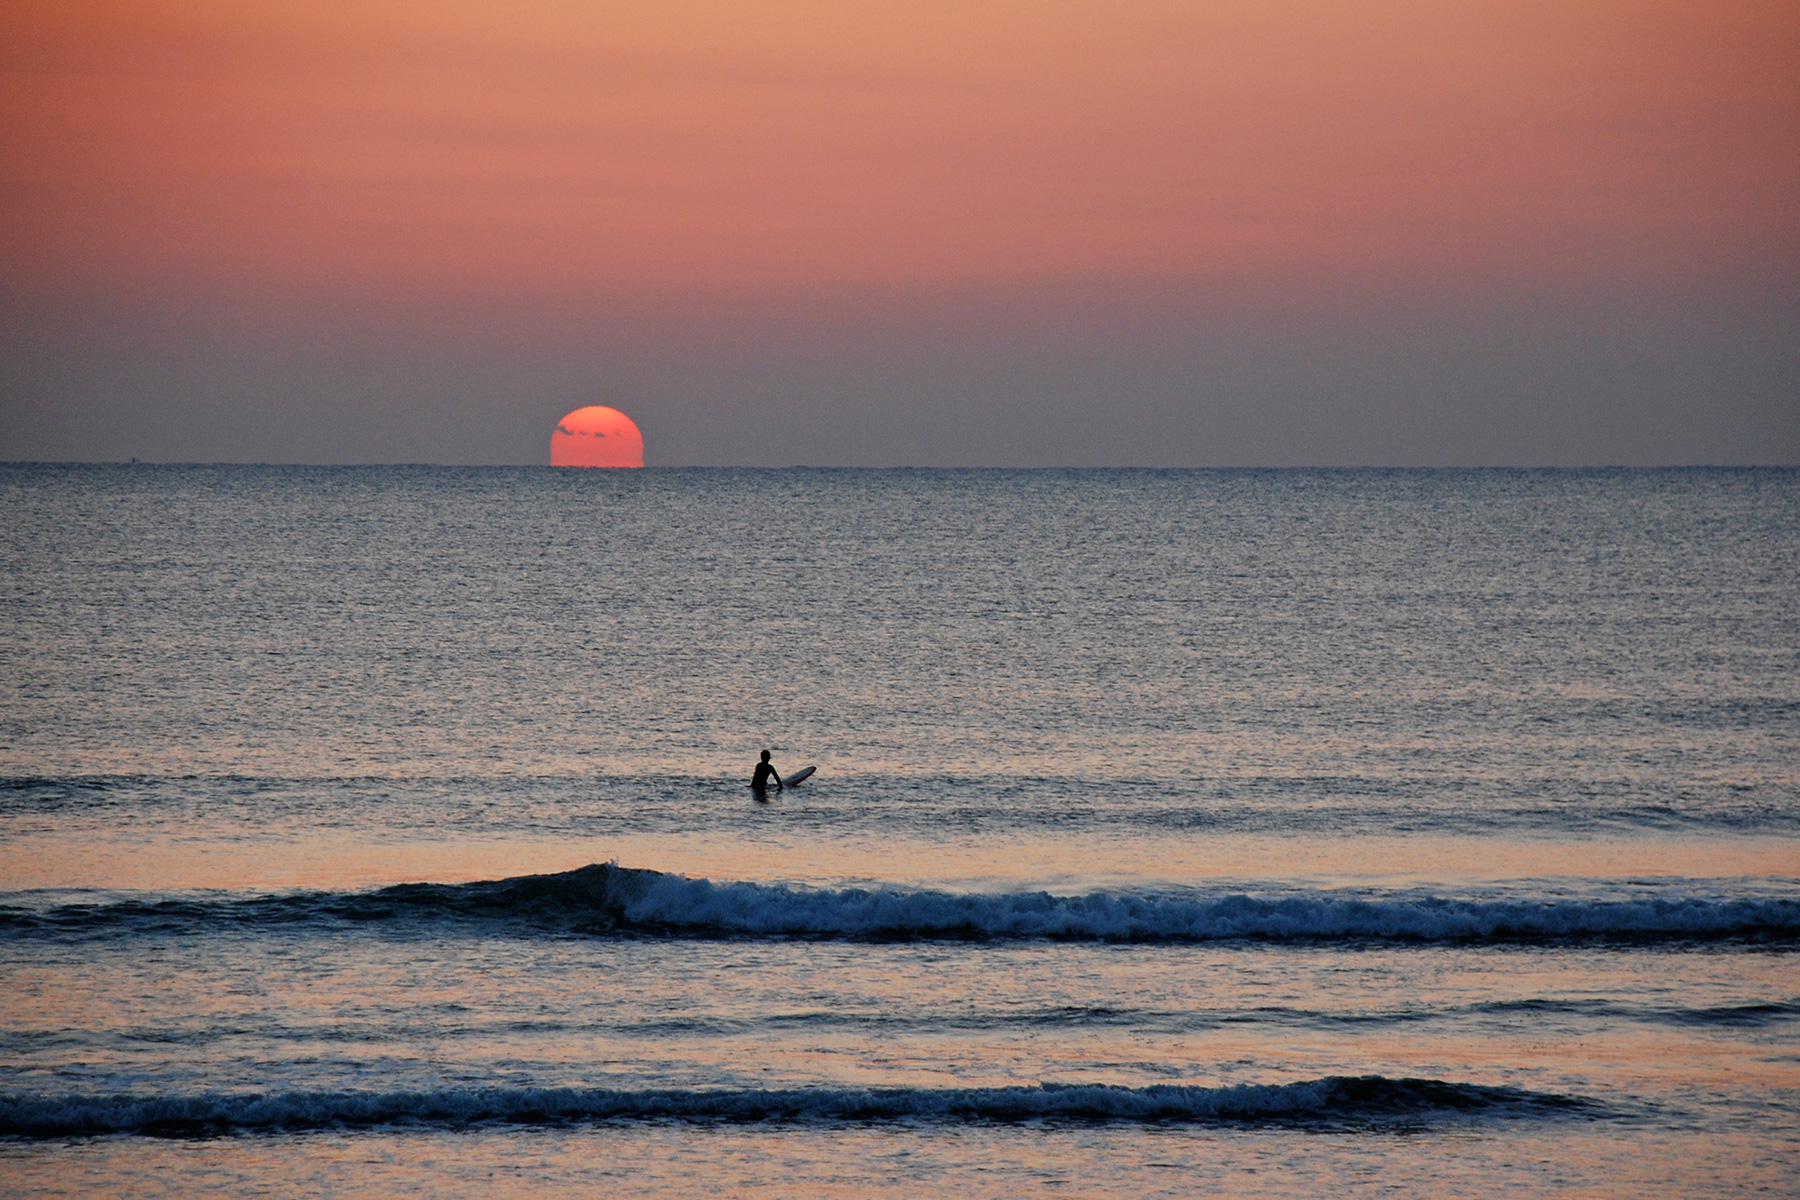 a surfer sits waiting for a wave in front of the rising sun in japan